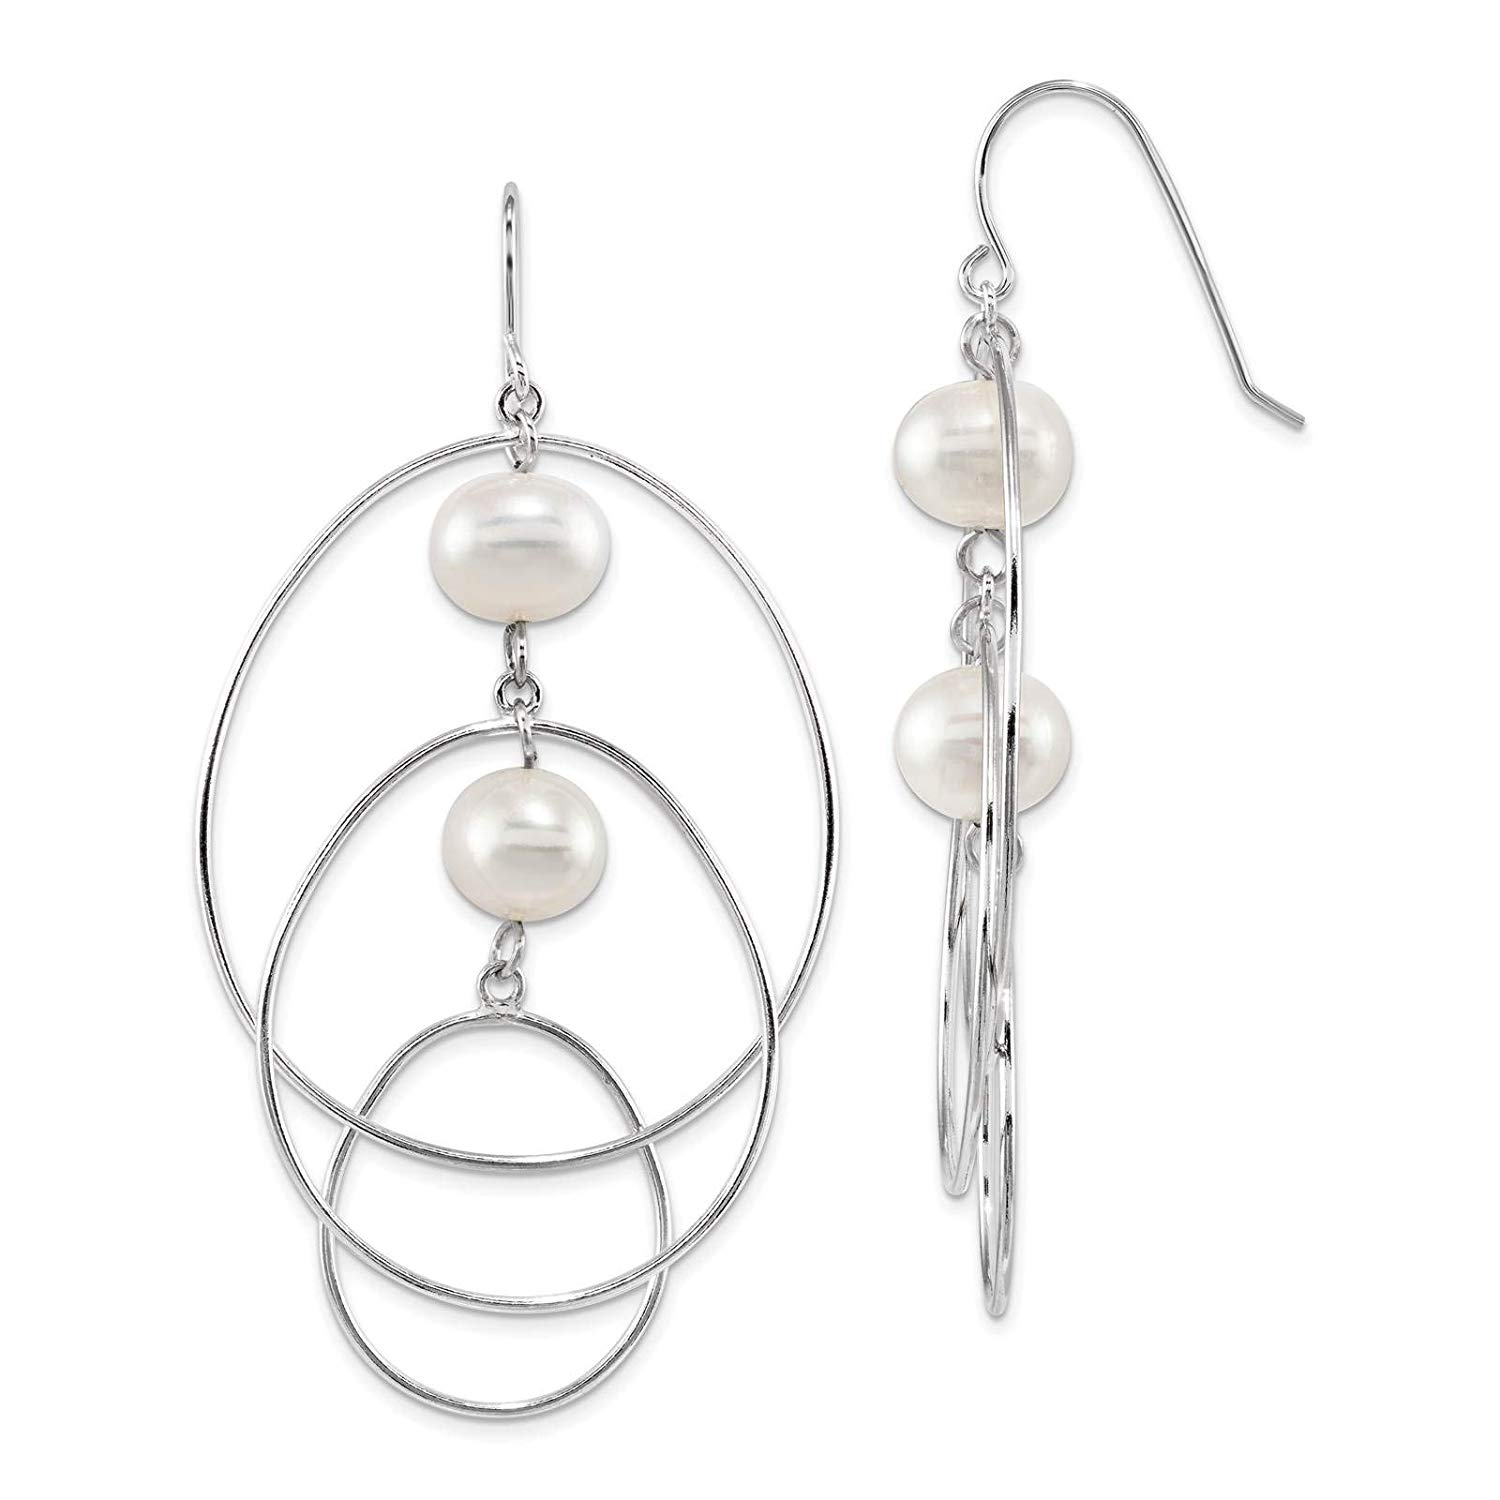 .925 Sterling Silver Rhodium-plated 8-9mm White Round Freshwater Cultured Pearl Dangle Earrings